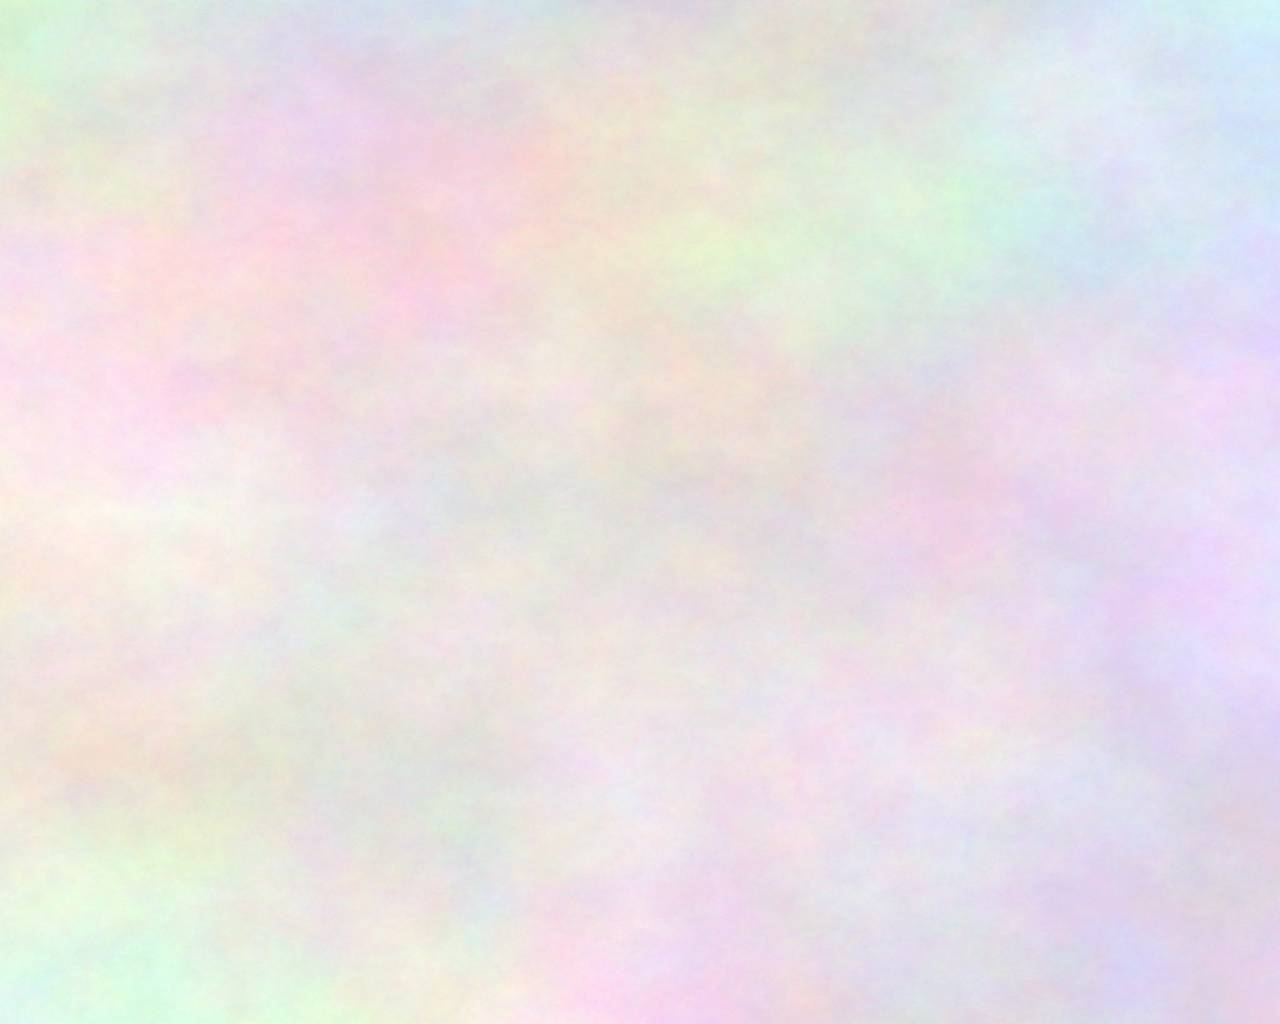 Pastel Plasma Colors Background Image Wallpaper or Texture for 1280x1024